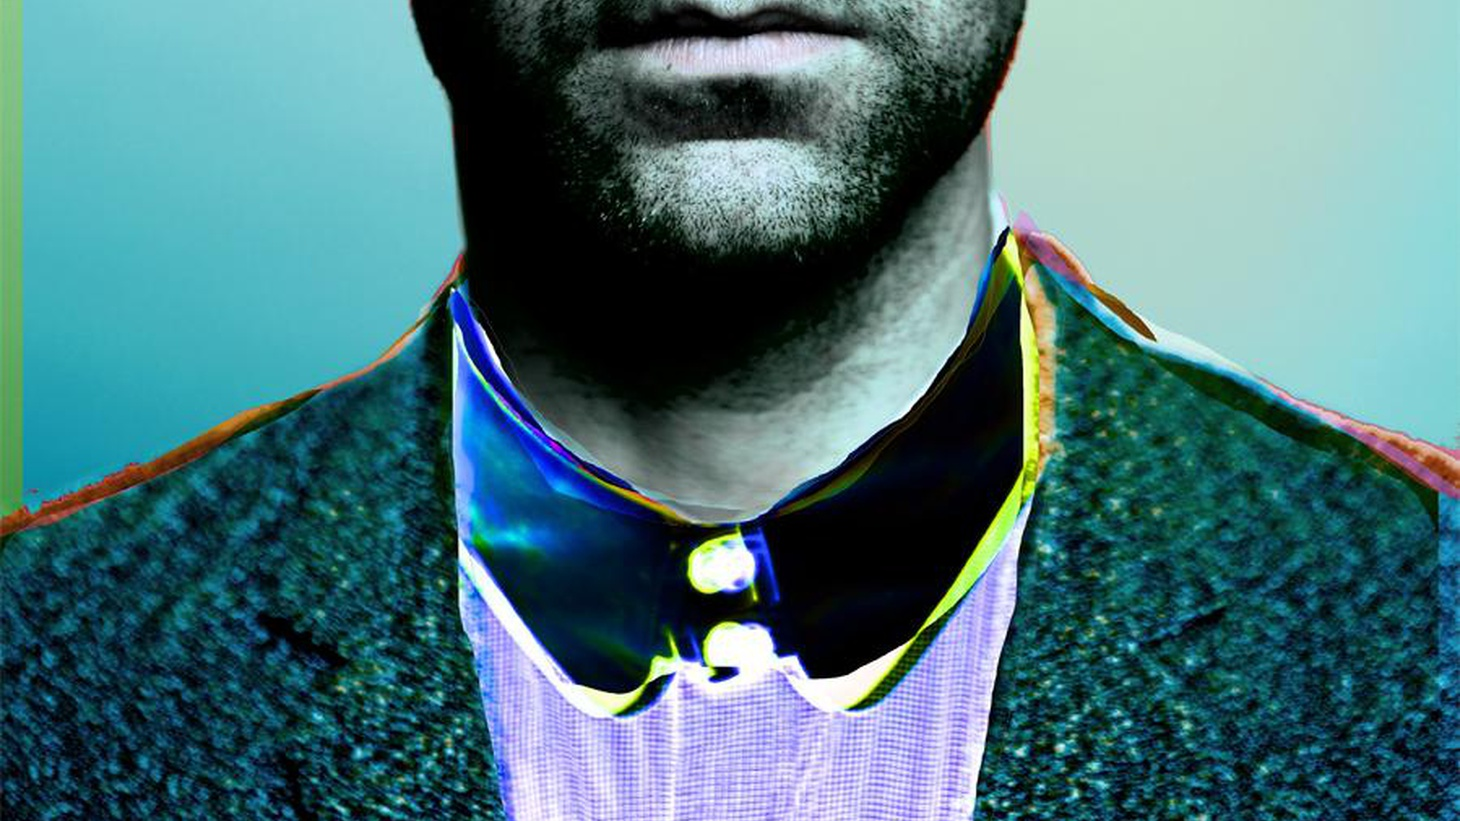 Electro dance king Jamie Lidell performs songs from his self-titled album.